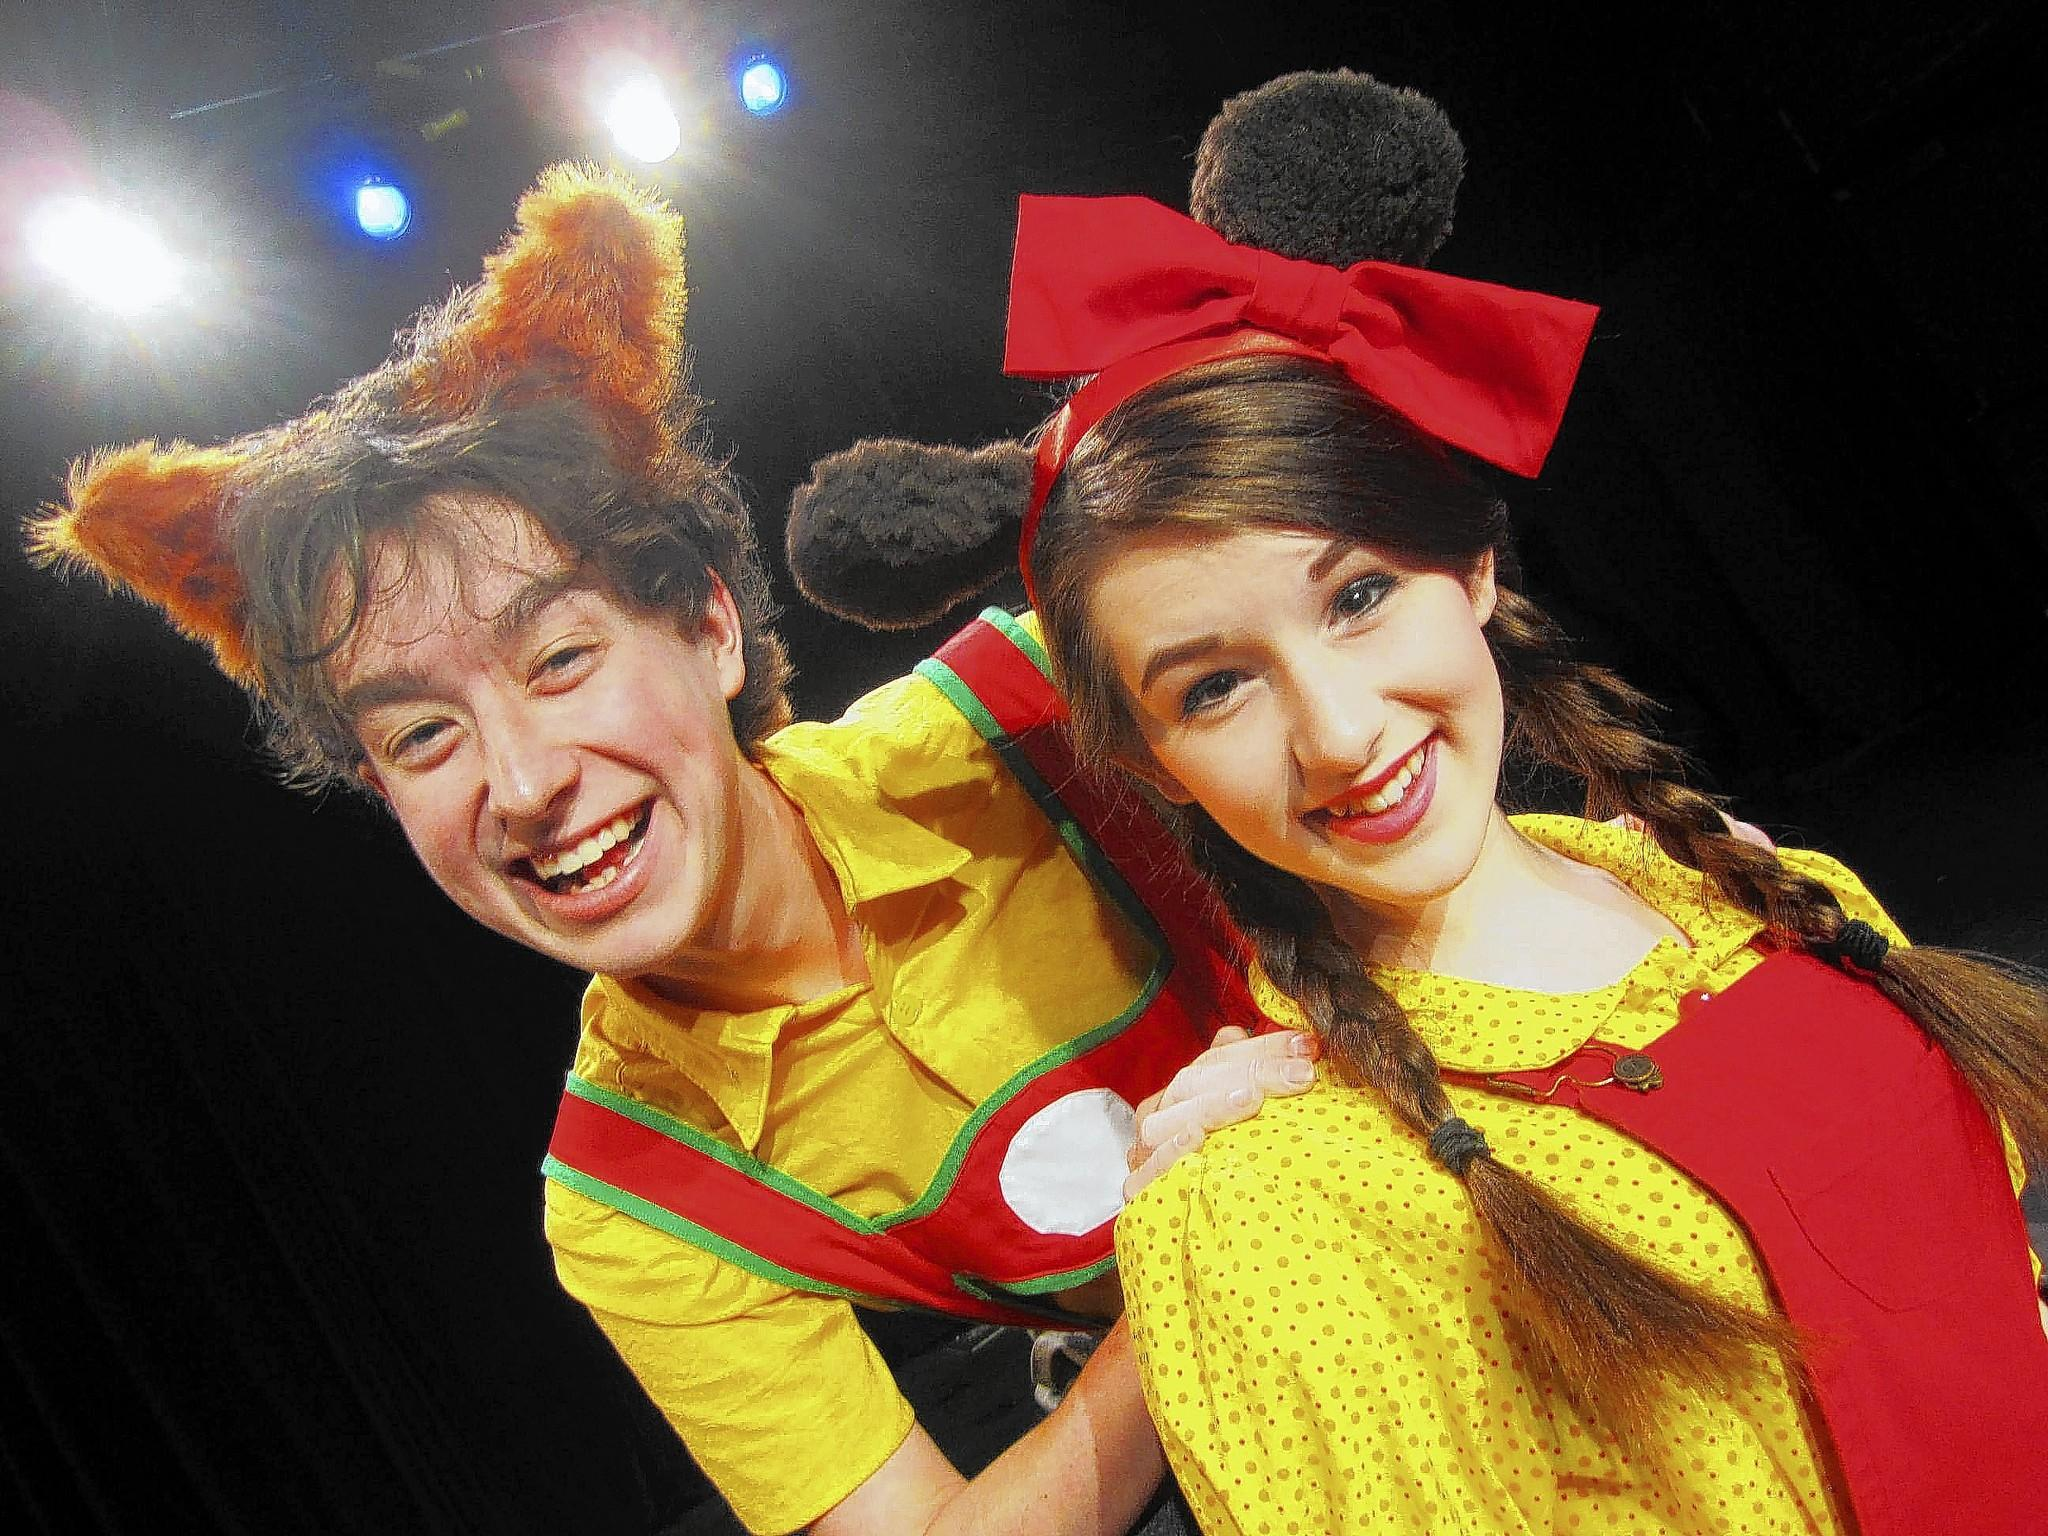 Michael Thibodeau and Kayla Alvarez star in 'Busytown.'